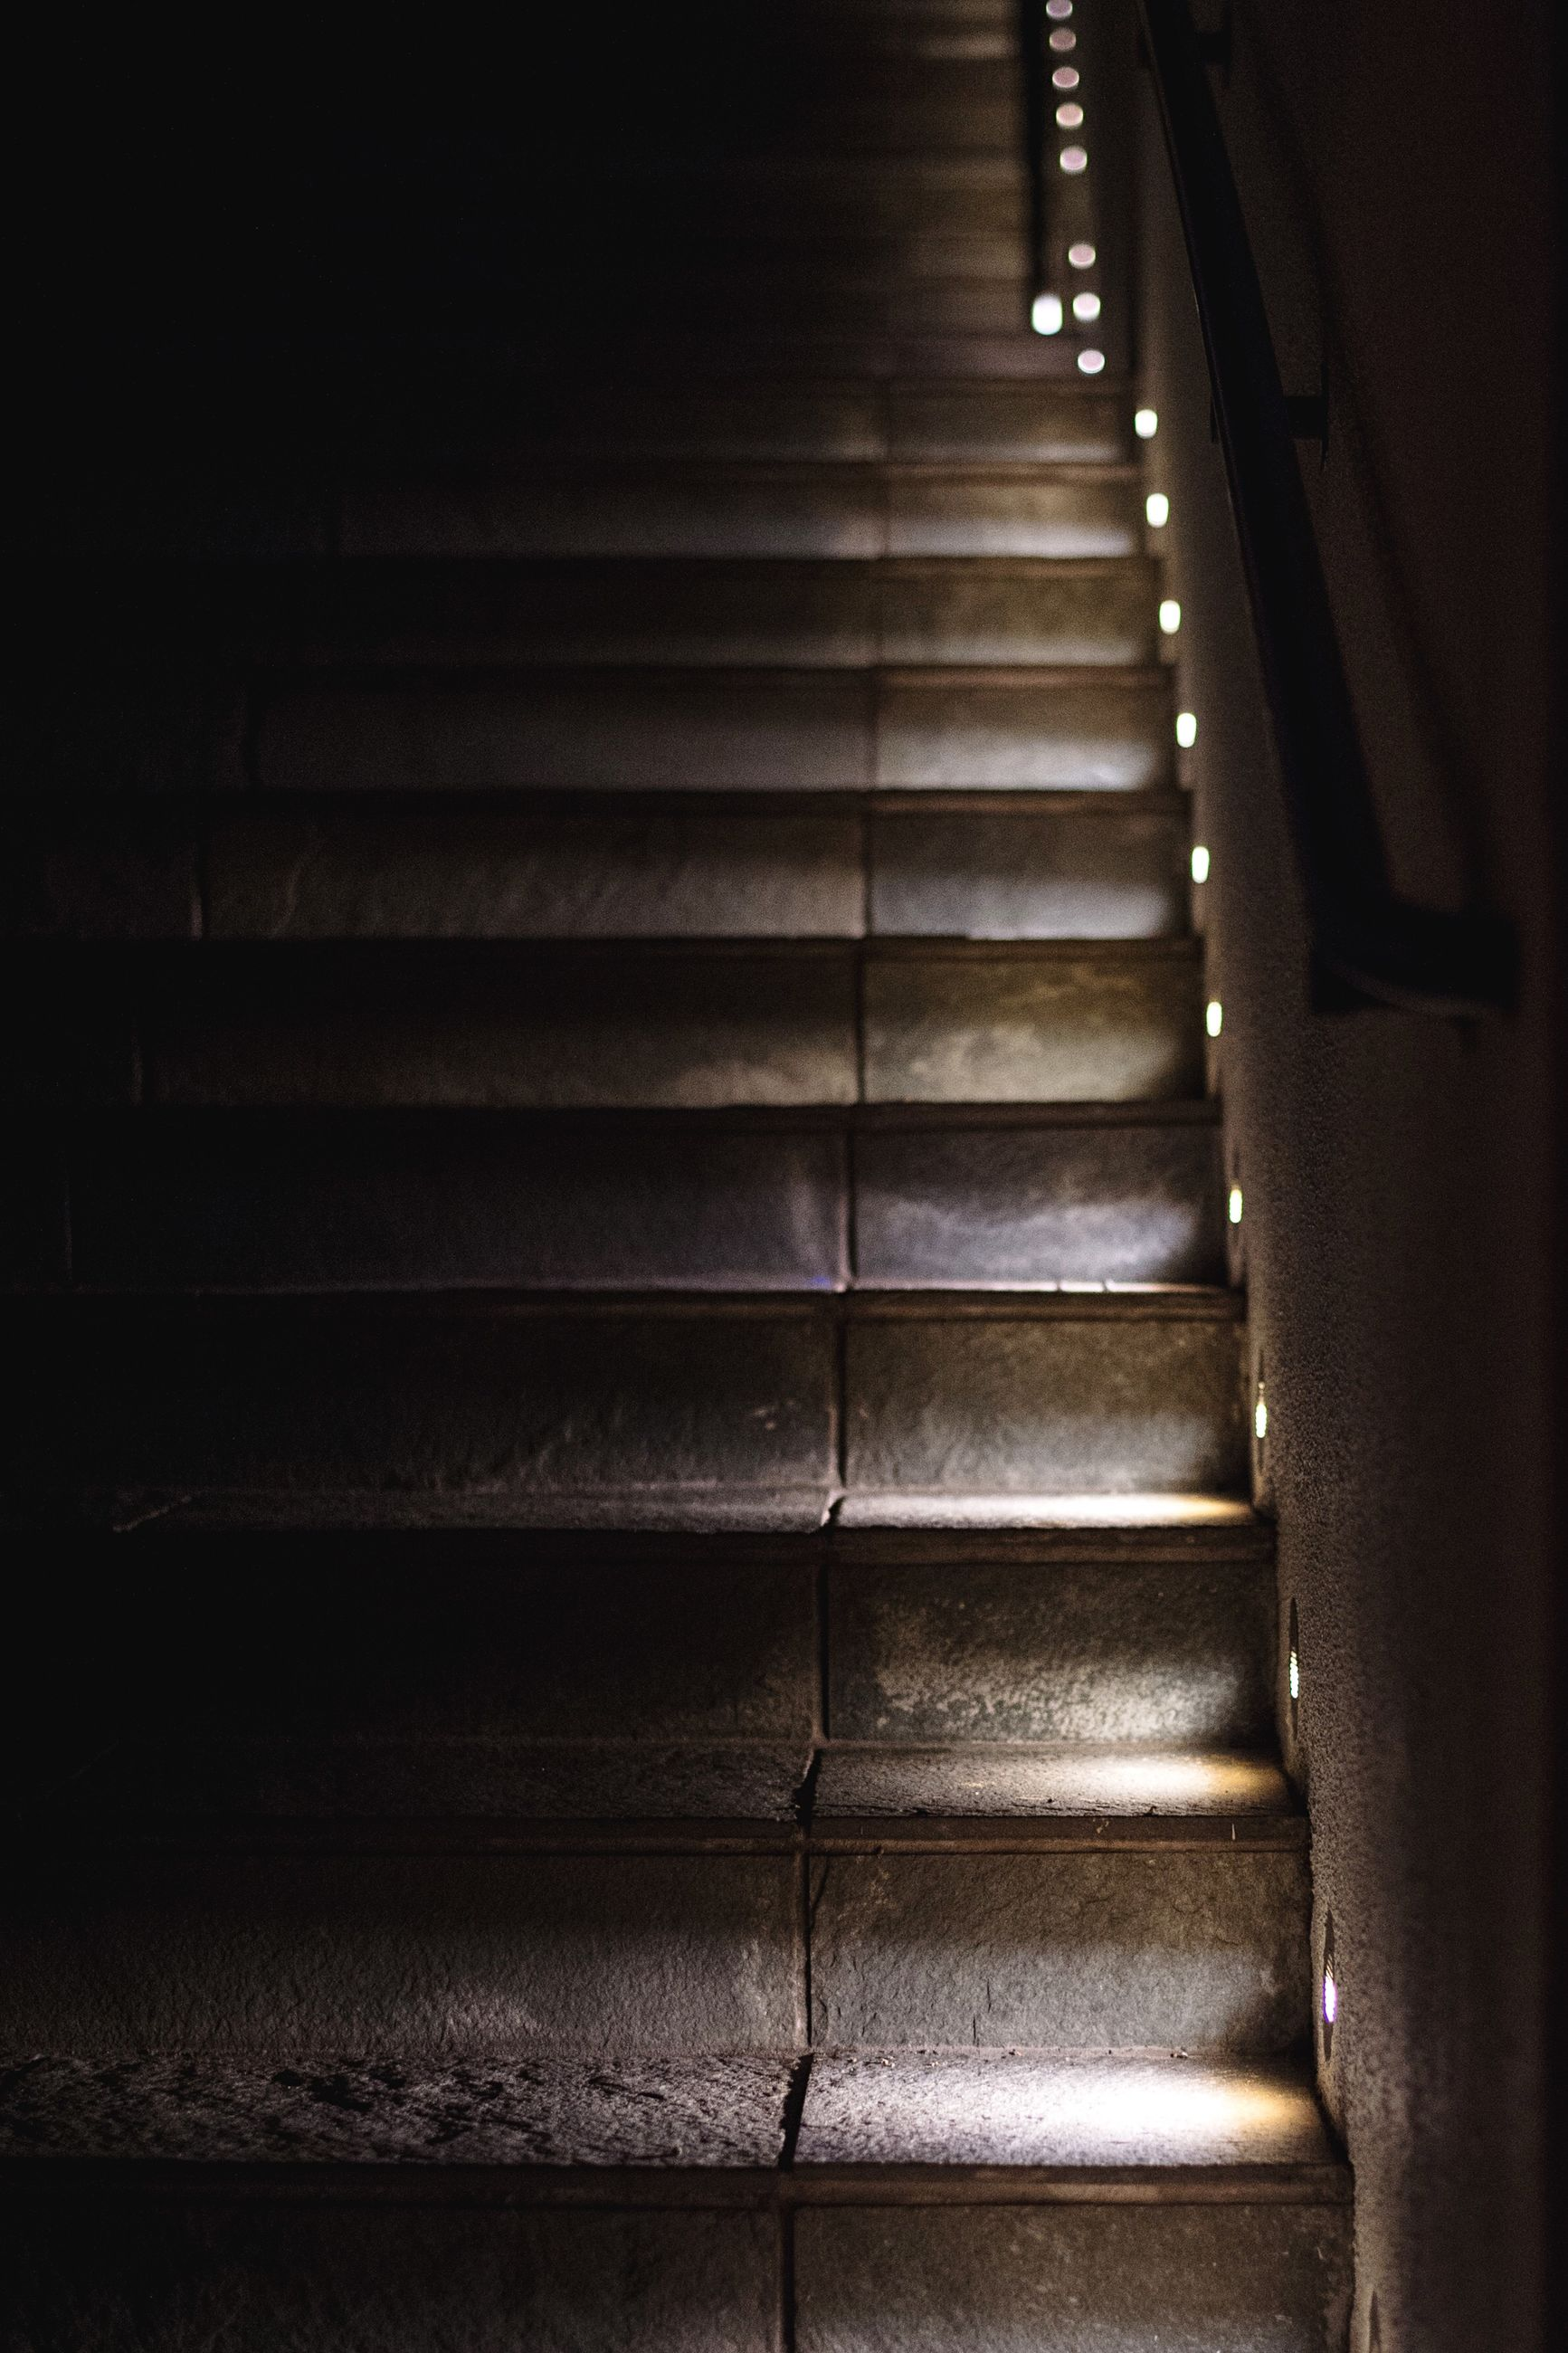 steps, indoors, steps and staircases, staircase, the way forward, pattern, high angle view, diminishing perspective, railing, stairs, no people, wall - building feature, close-up, empty, textured, built structure, sunlight, day, wood - material, auto post production filter